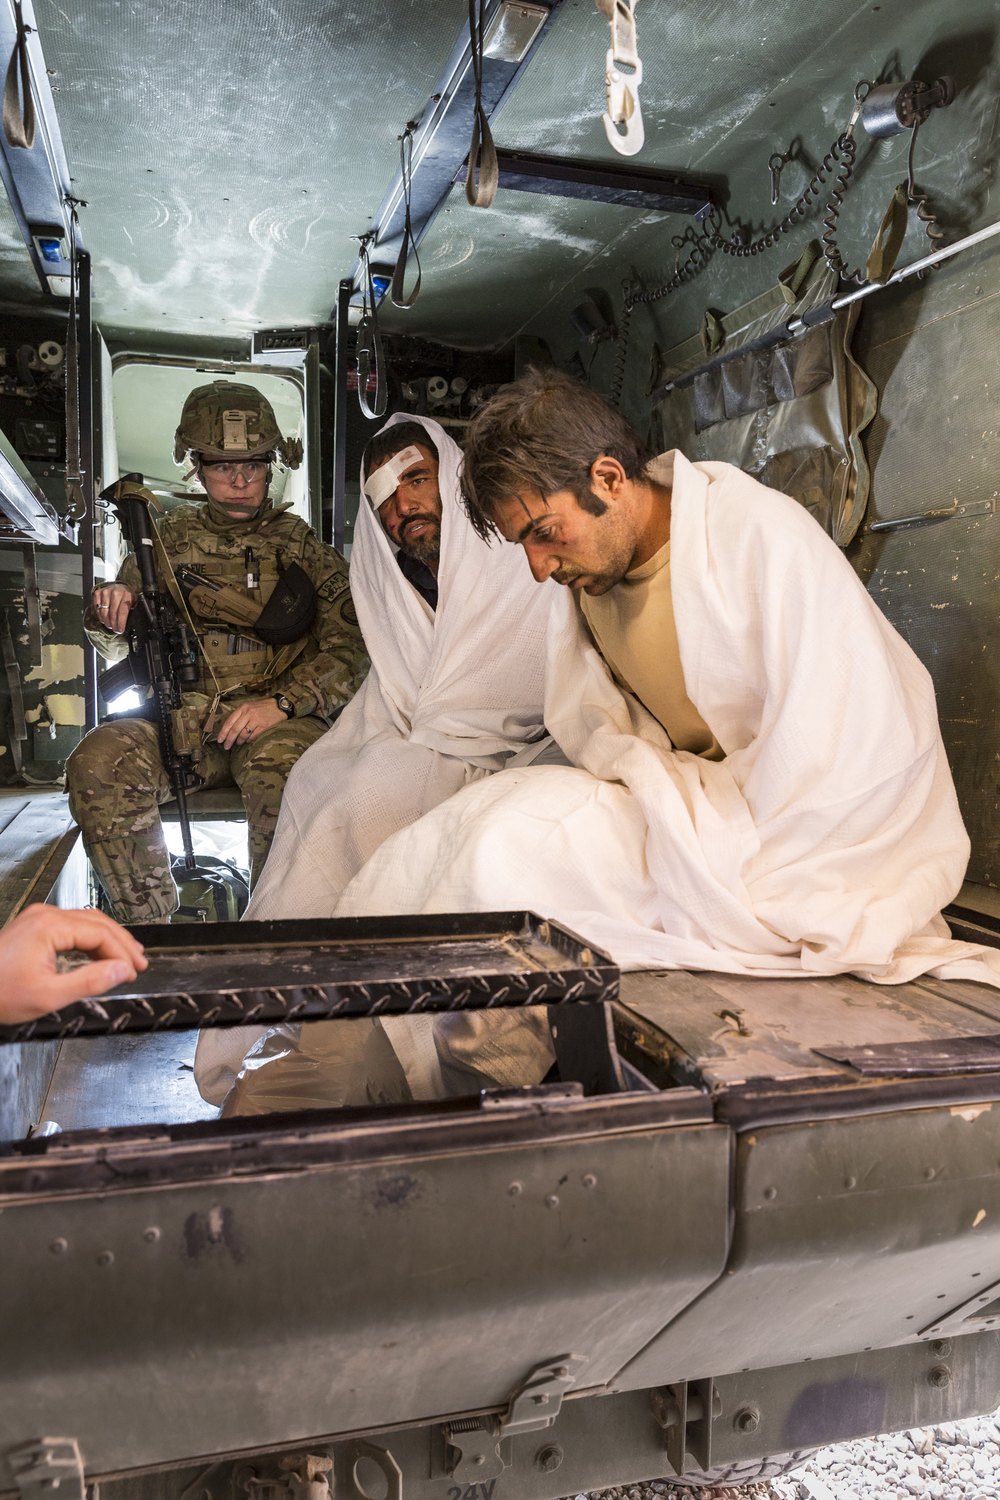 A US Navy Hospital Corpsman and two Afghan Soldiers prepare for transport in the back of a US Army ambulance at Forward Operating Base Farah, Afghanistan.